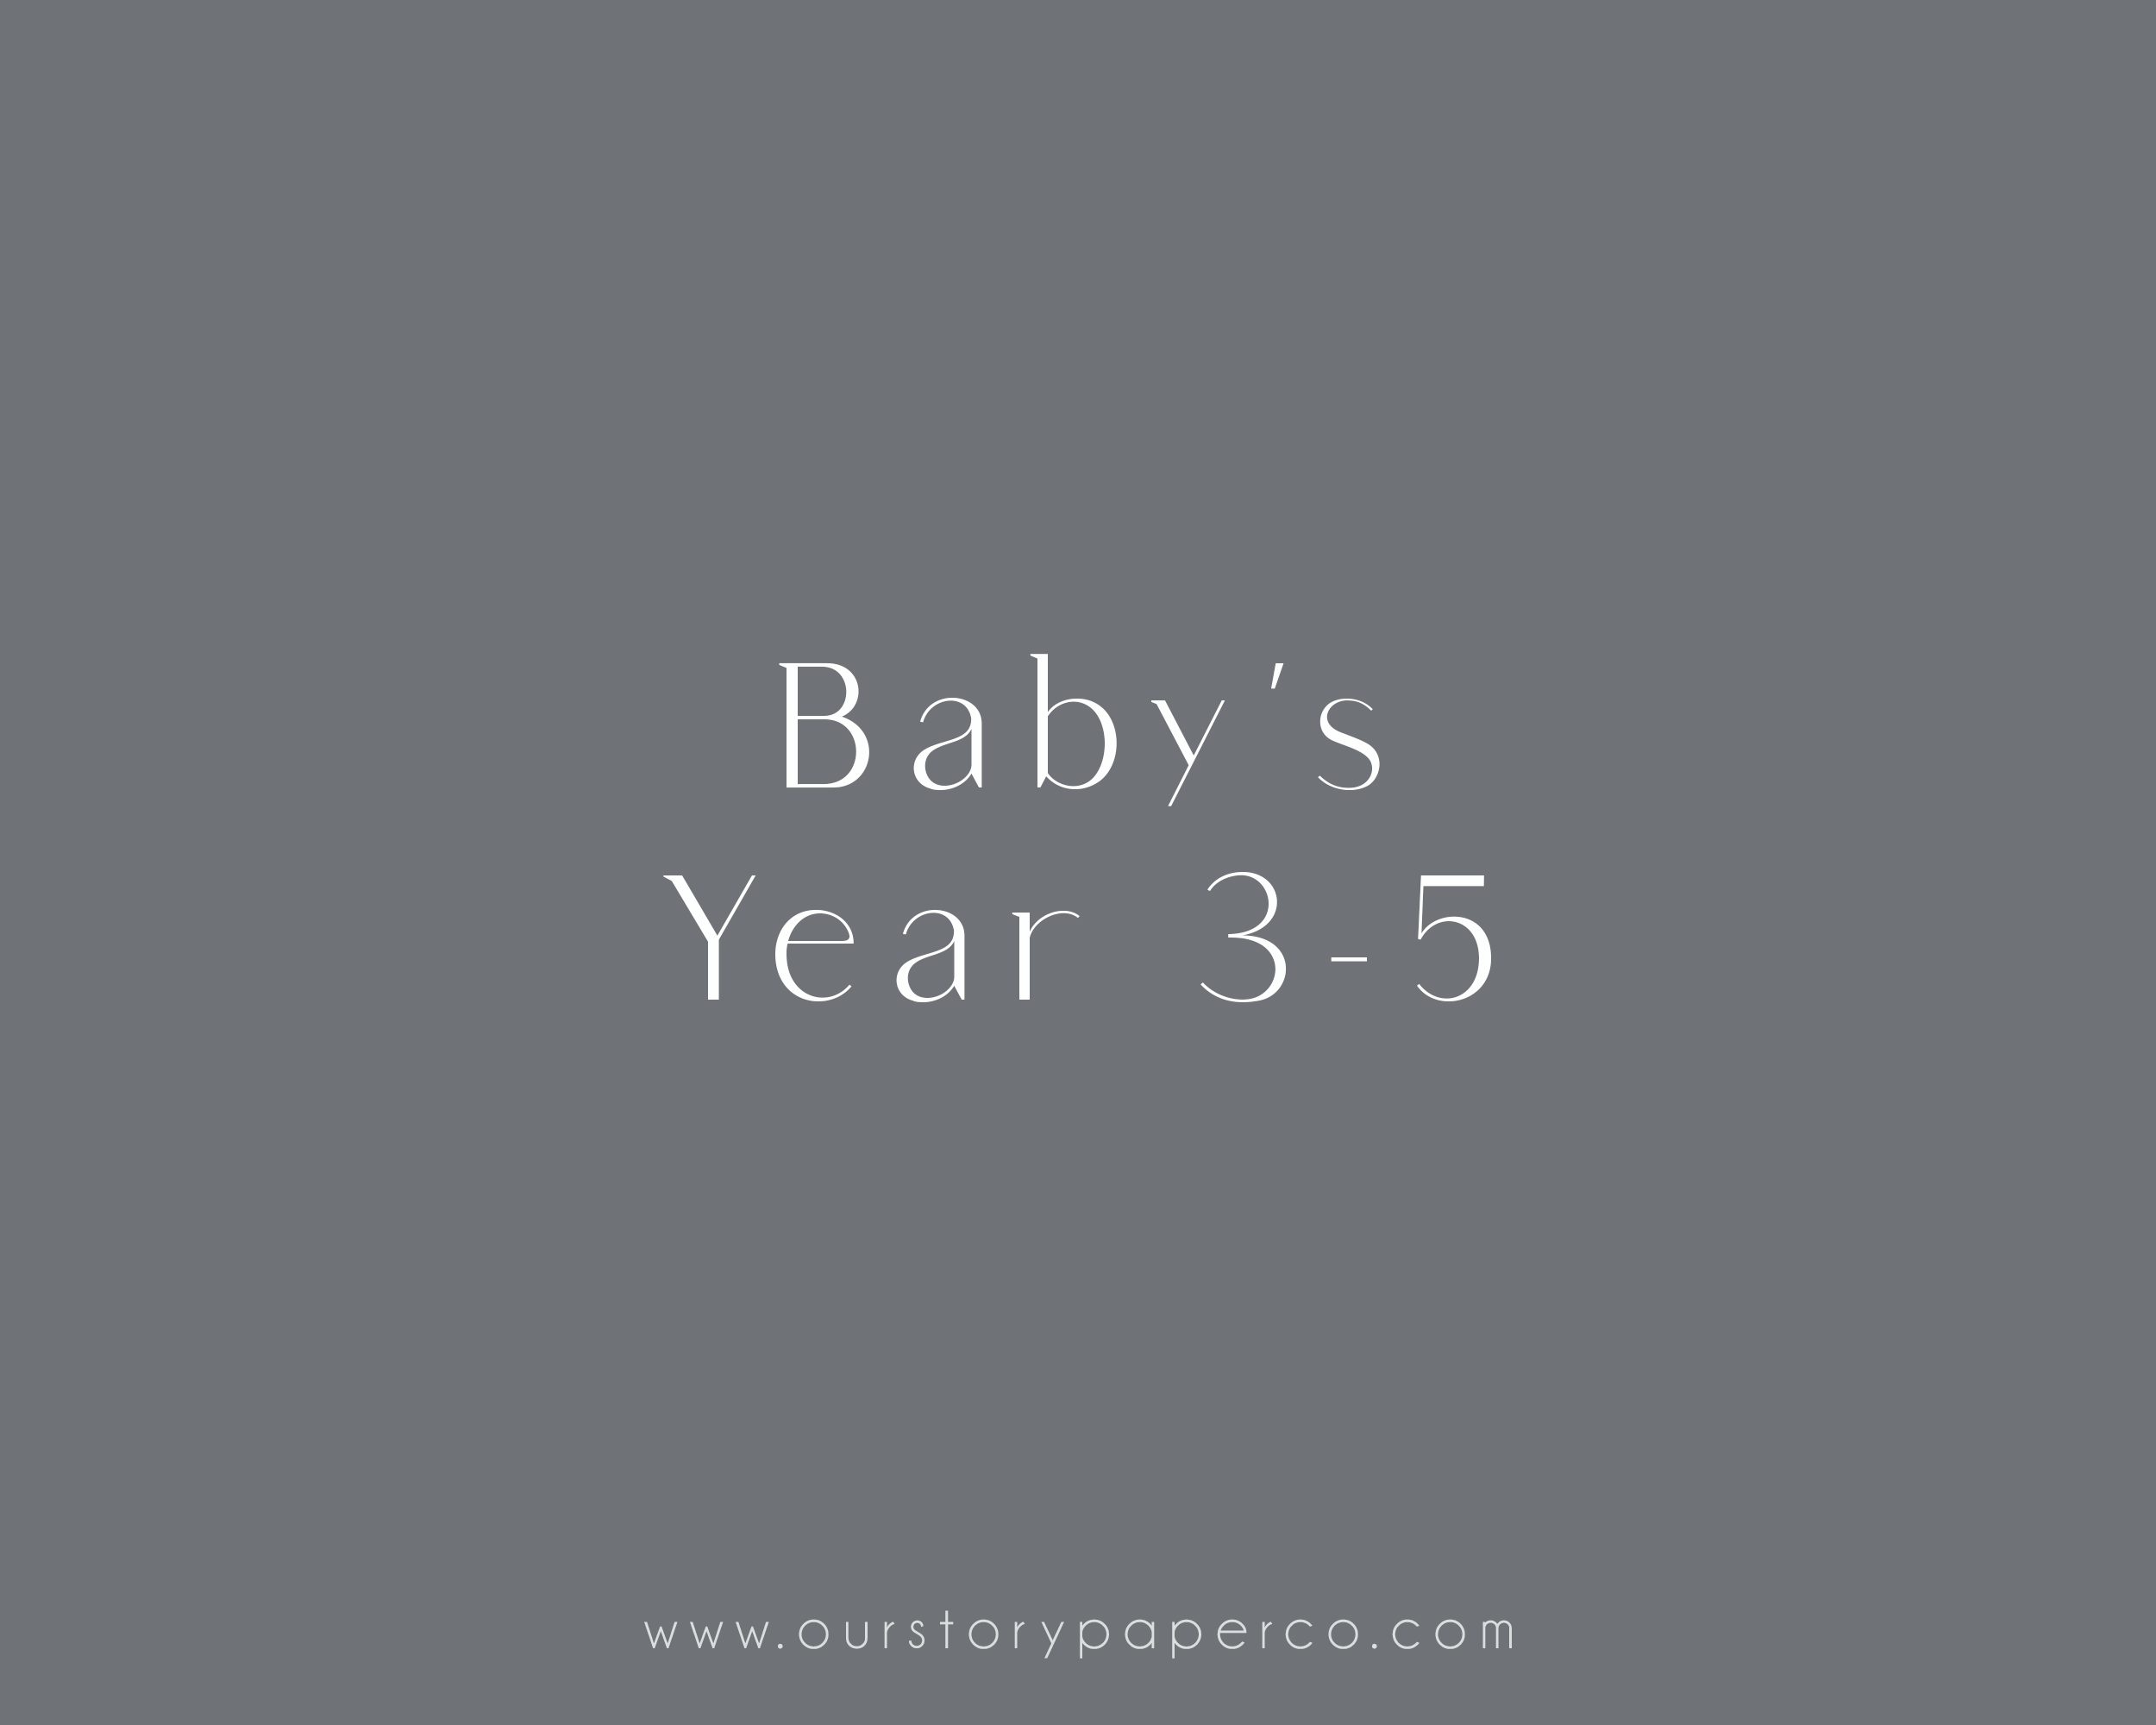 Baby's Year 3 - 5 Pack - Our Story Paper Co.